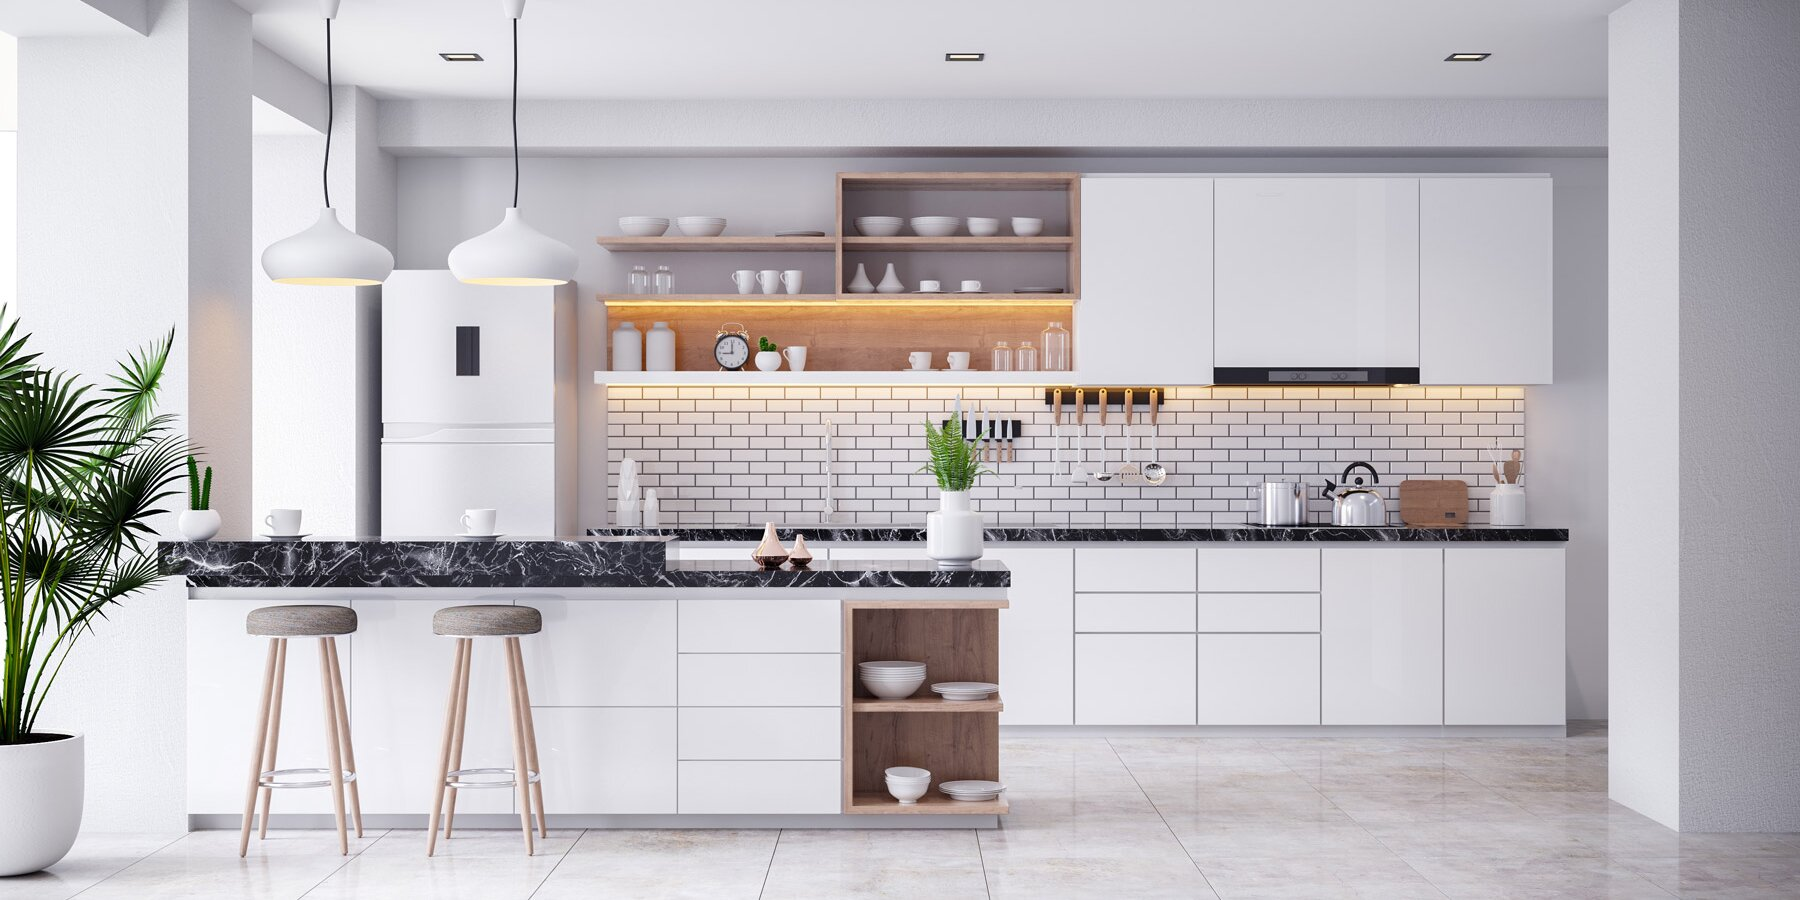 Kitchen Remodel Costs How Much To Spend On Your Renovation Real Simple